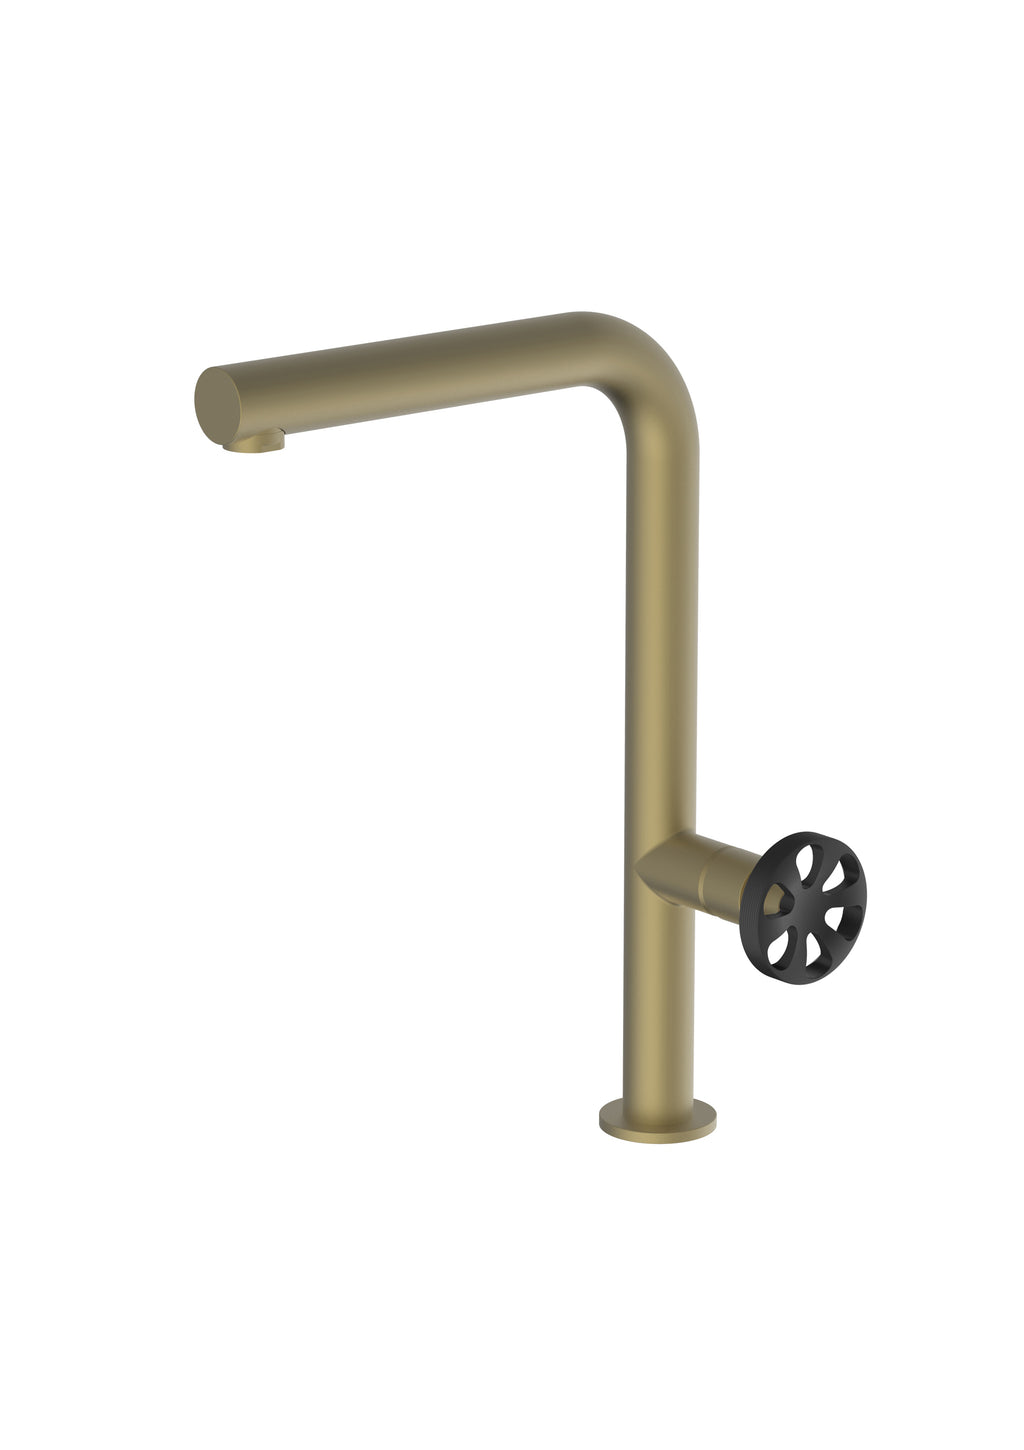 Potento Brass/Gold Mix & Match, kitchen mixer tap